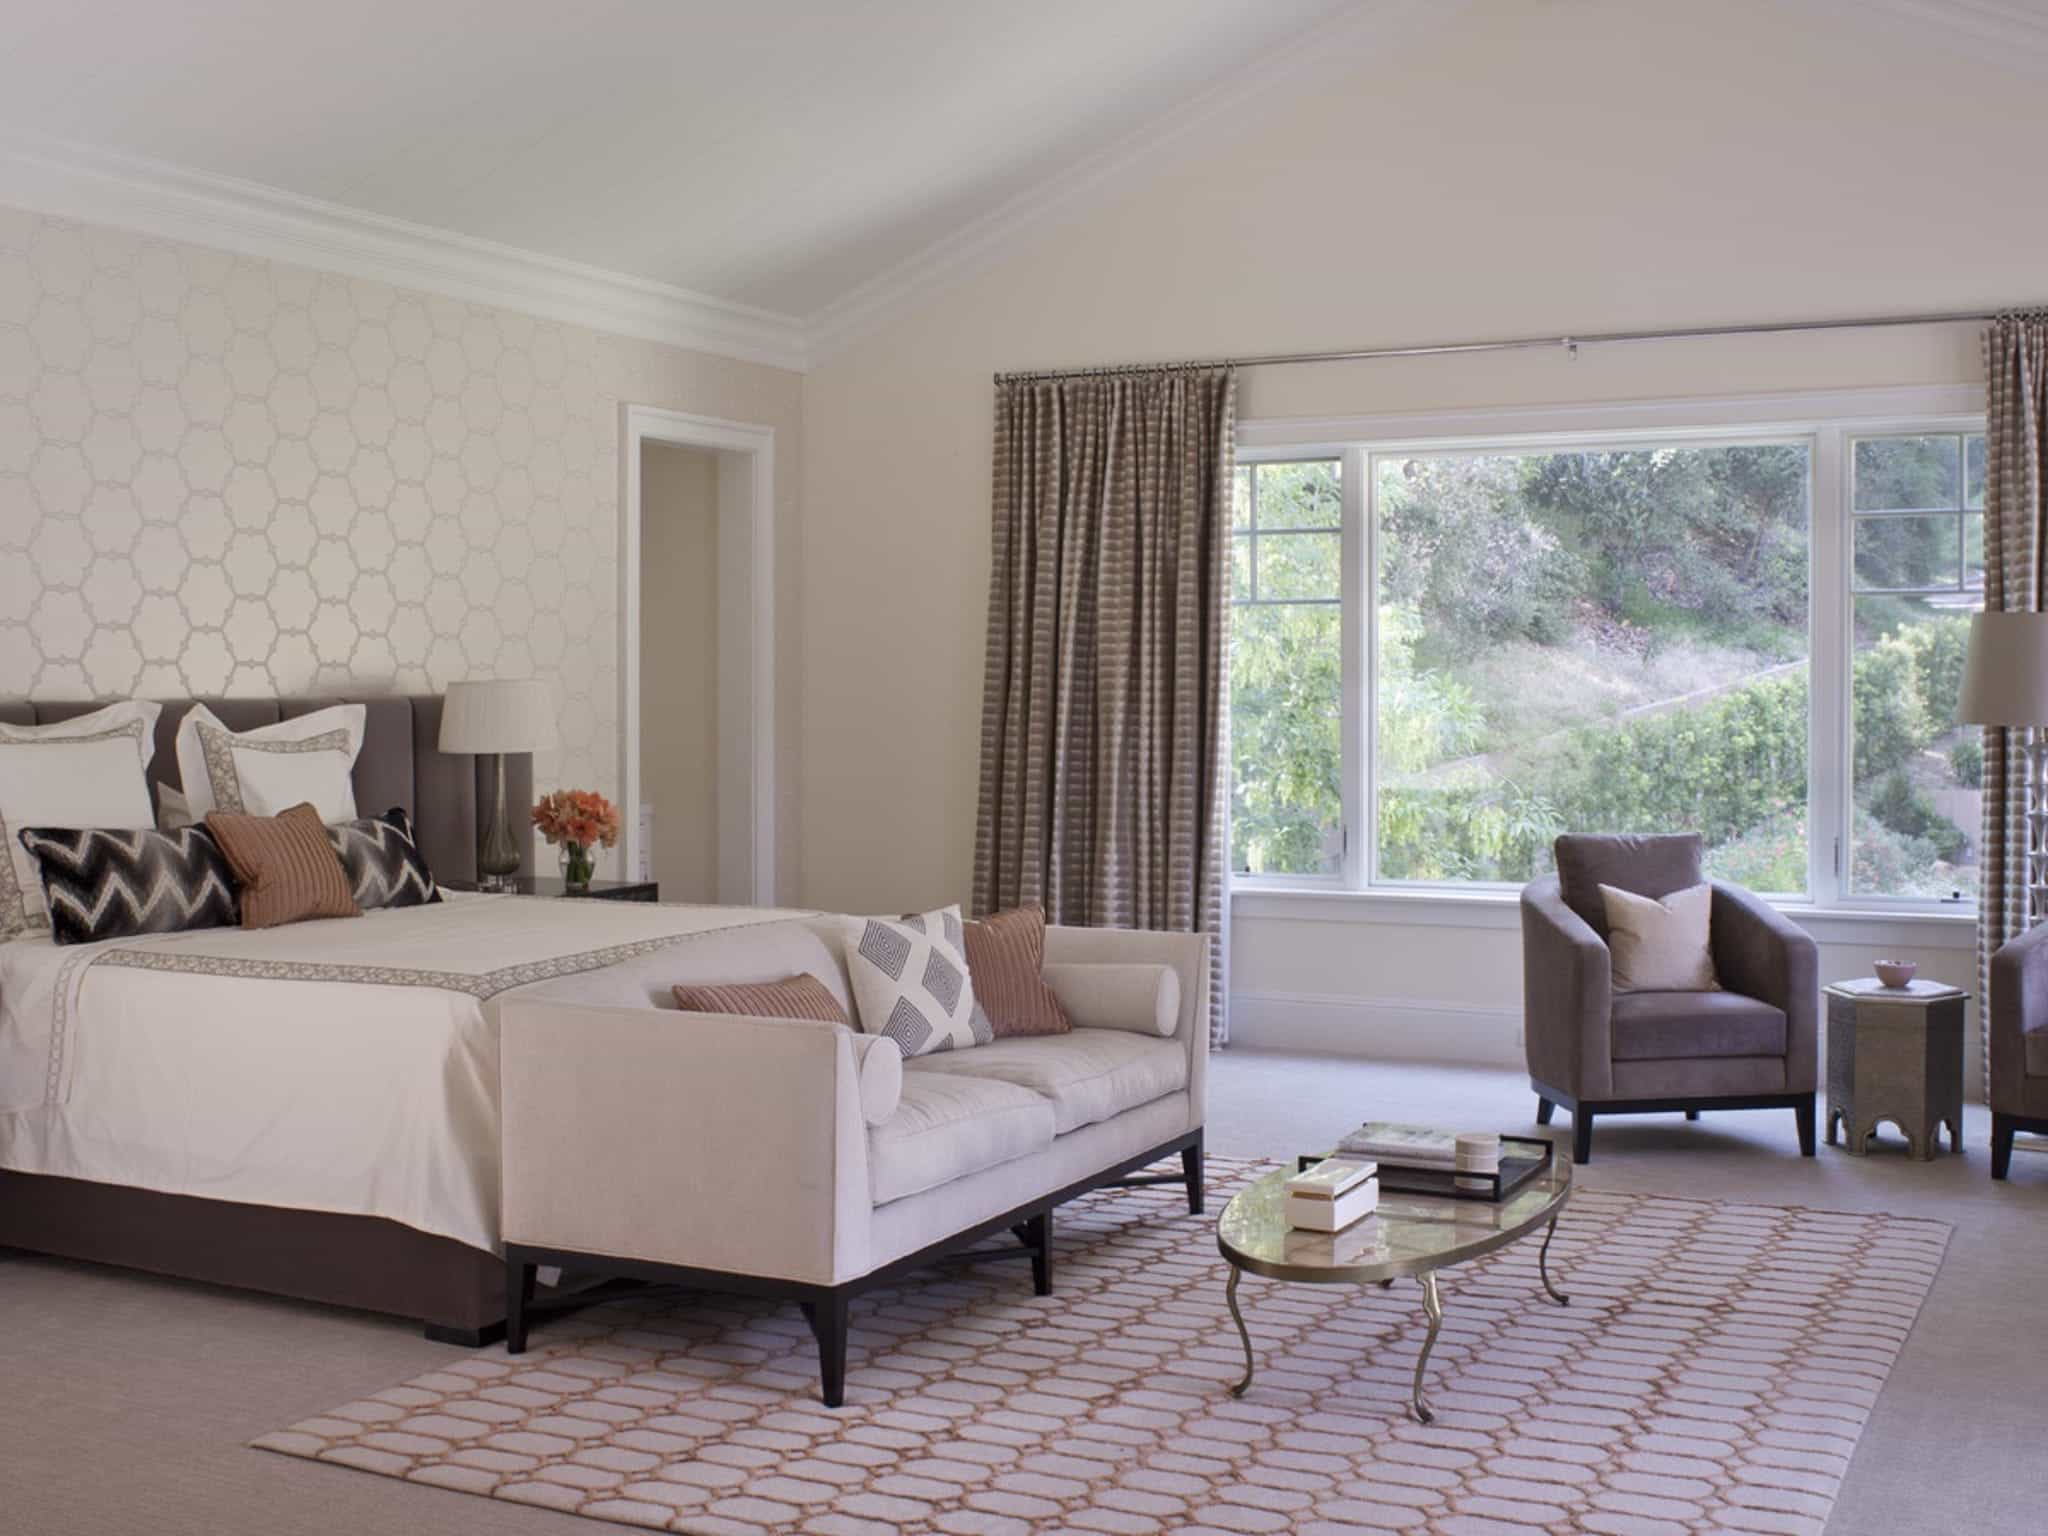 Elegant Serene Master Bedroom Decoration With Accent Wall (Image 13 of 28)